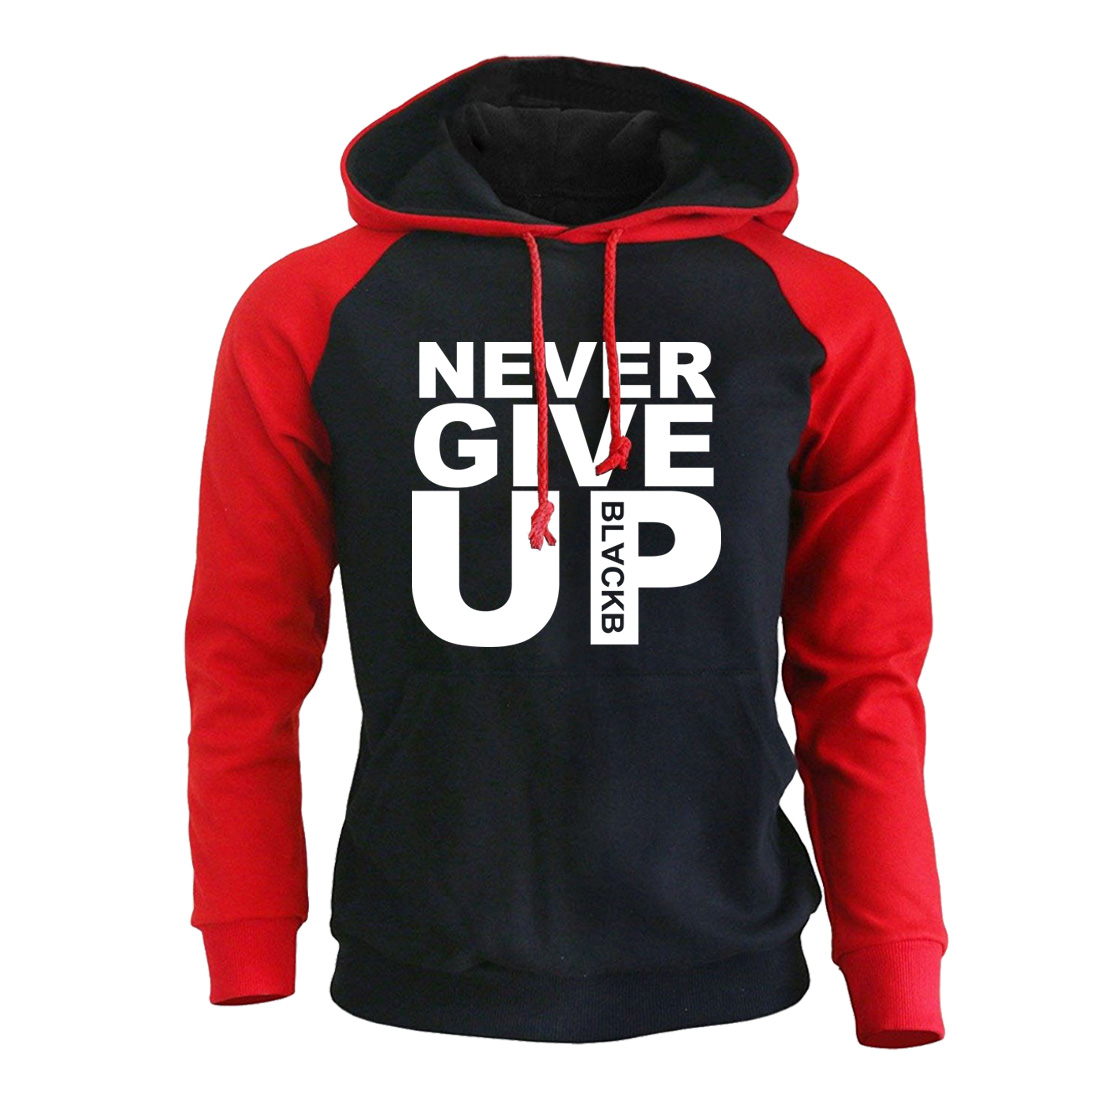 You'll Never Walk Alone Men Hoodies Sweatshirts 2019 Autumn New Male Raglan Hoodie Never Give Up Print Tracksuit Man Pullover